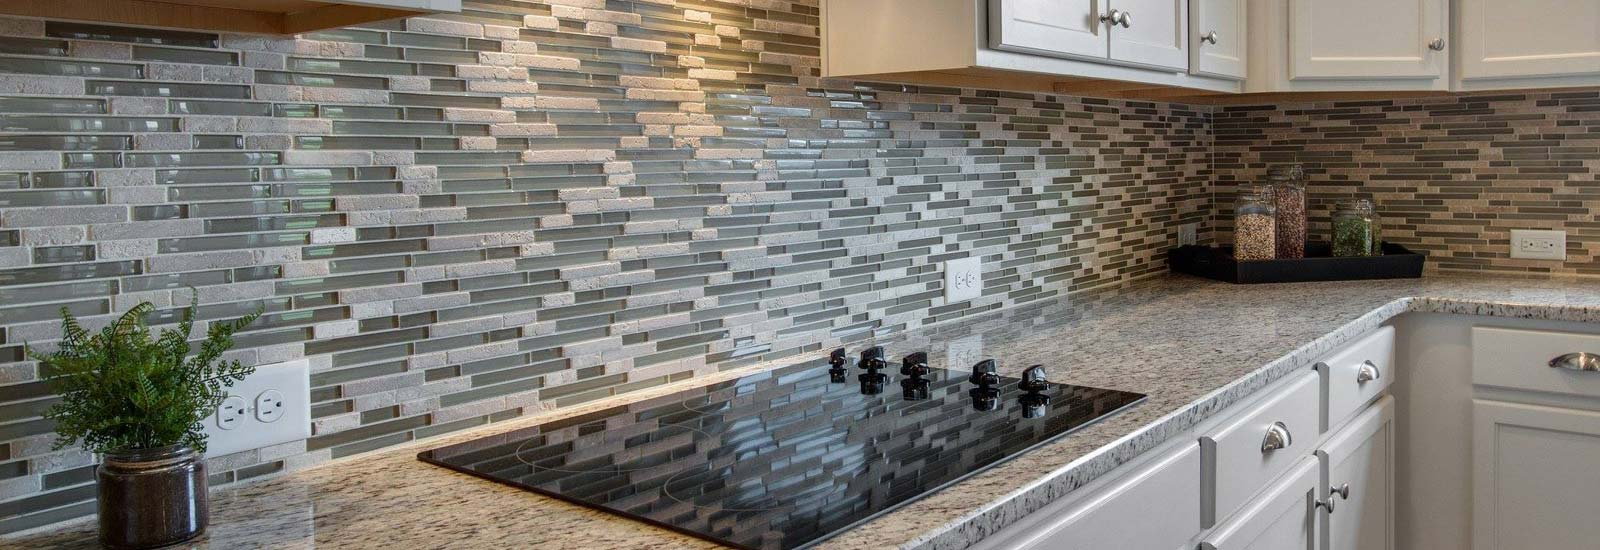 Home - Tennessee Tile and Marble - largest independent natural stone